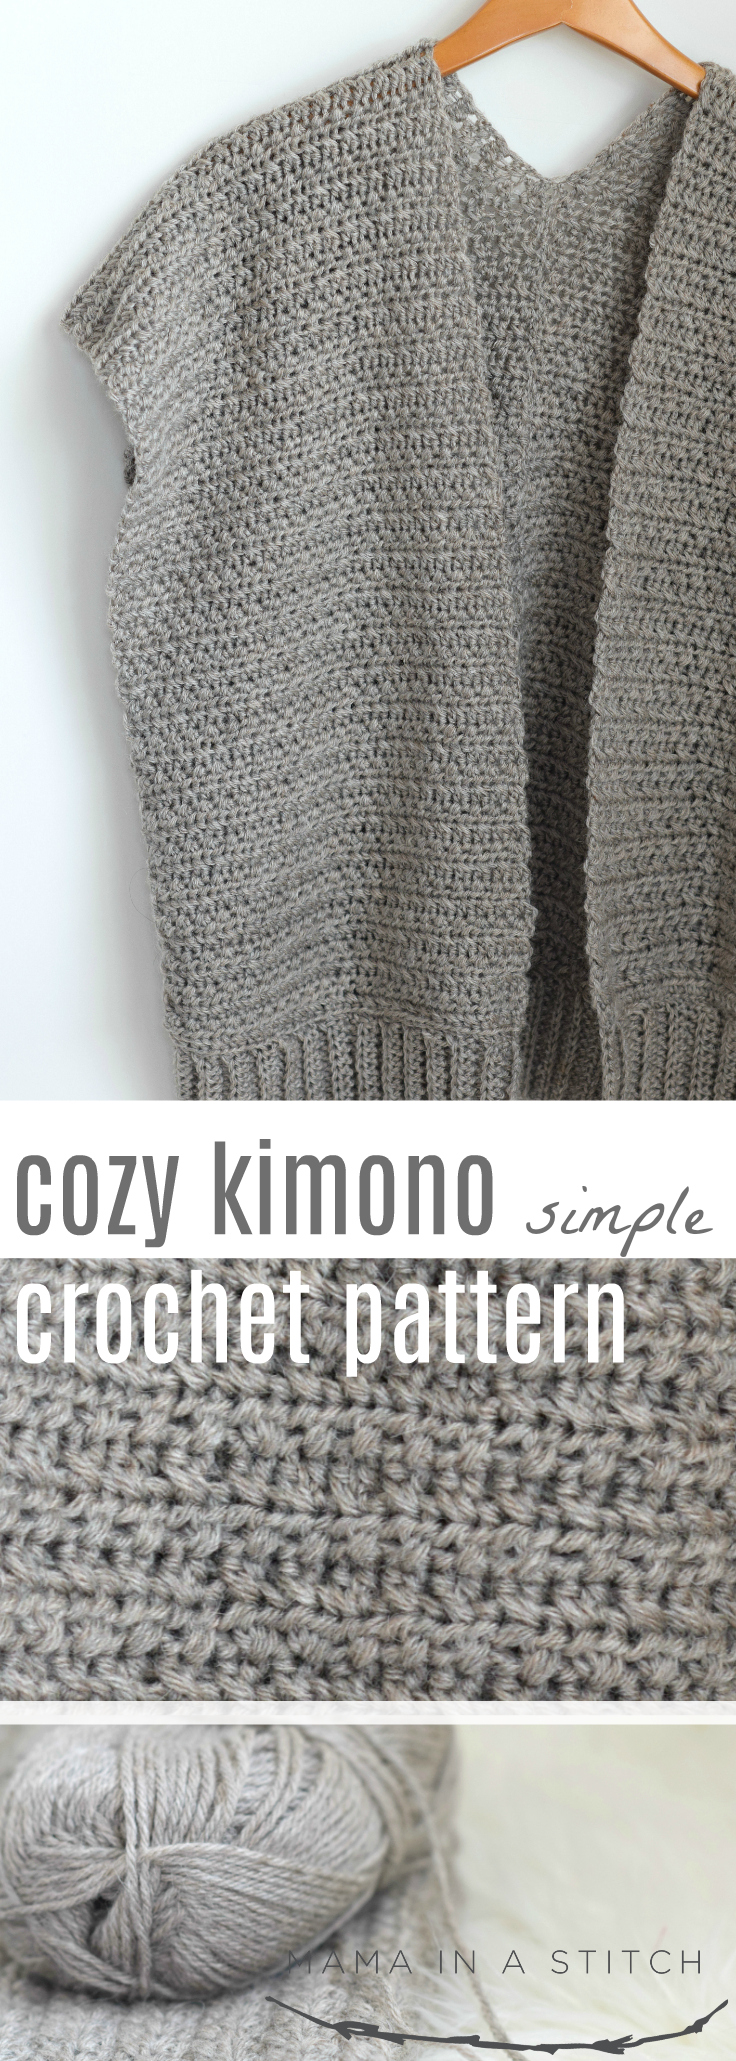 Easy and pretty pattern for a fall or winter crocheted kimono! This works up so beautifully and is perfect for a beginner crocheter or if you are just looking for an easy project.  #freepattern #crochet #fall #diy #crafts